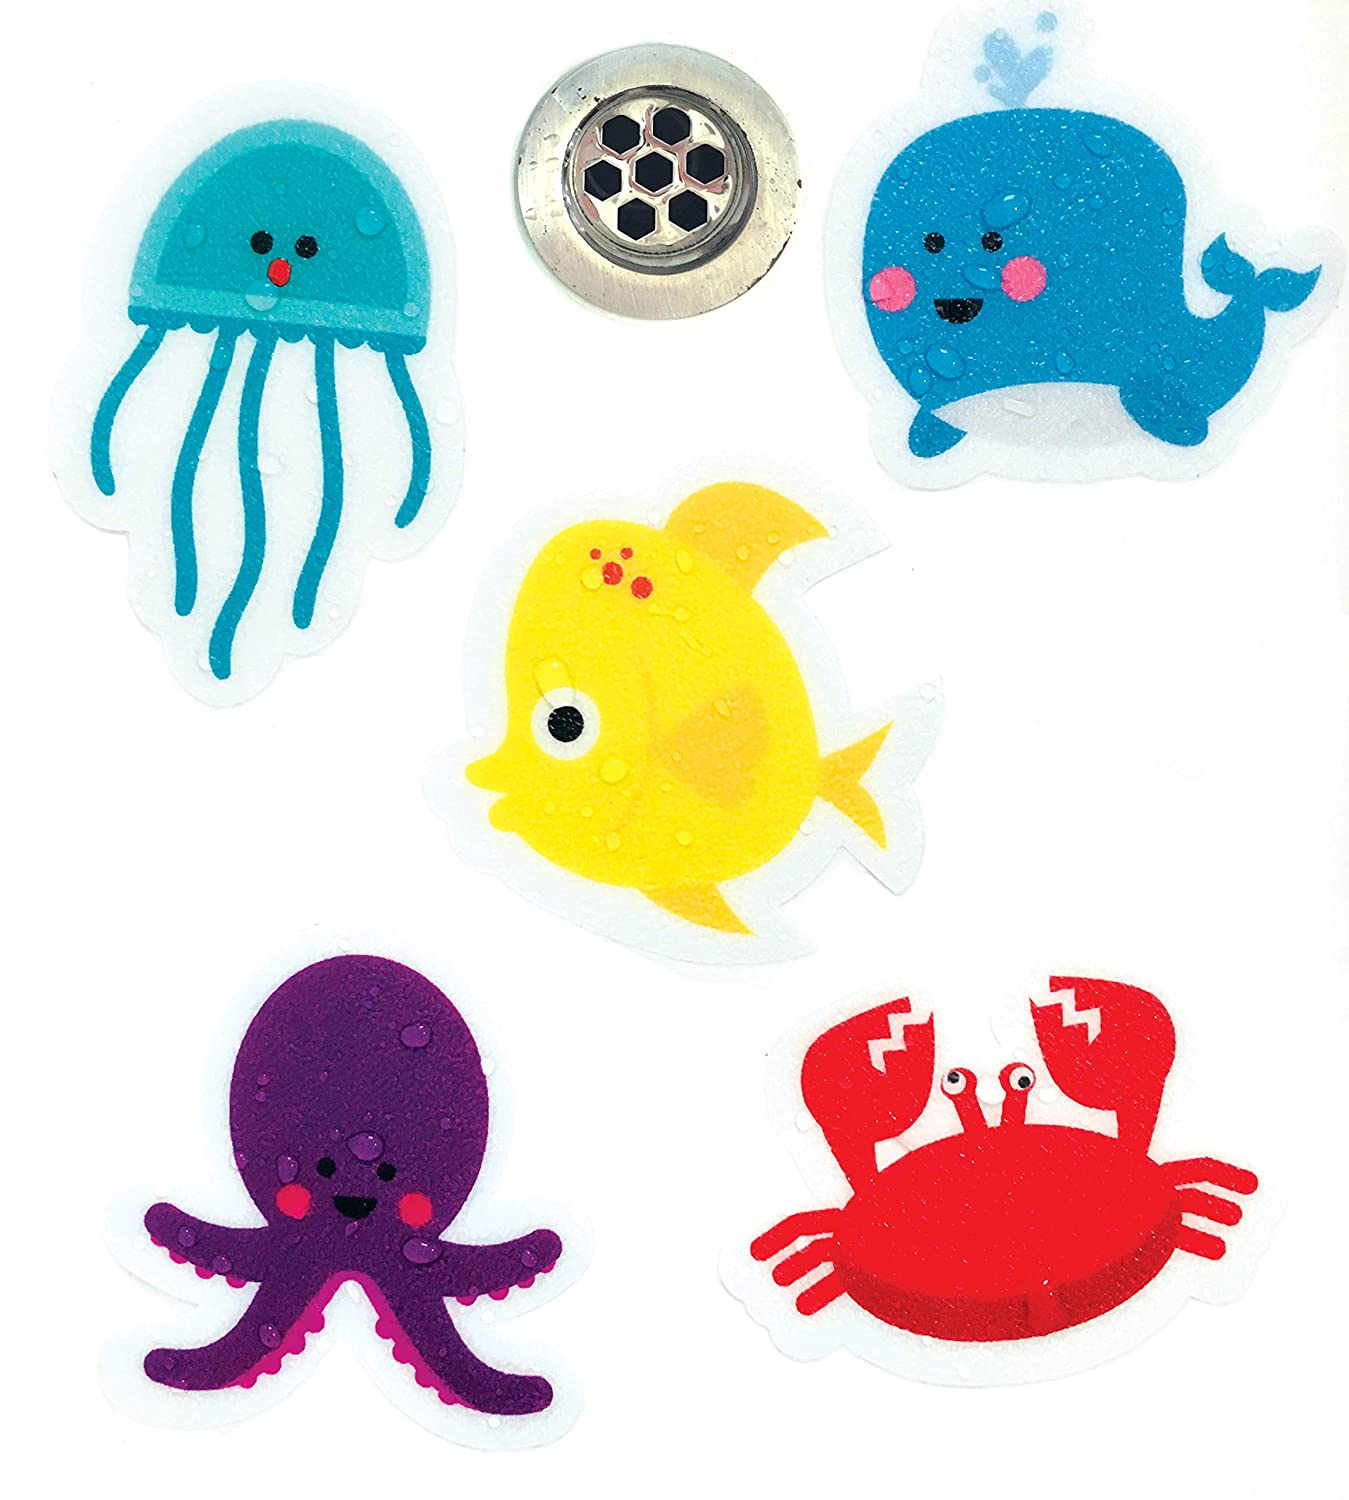 Curious Columbus Non-Slip Bathtub Stickers Pack of 10 Large Sea Creature Decal Treads. Best Adhesive Safety Anti-Slip Appliques for Bath Tub and Shower Surfaces Little Red Shepherd